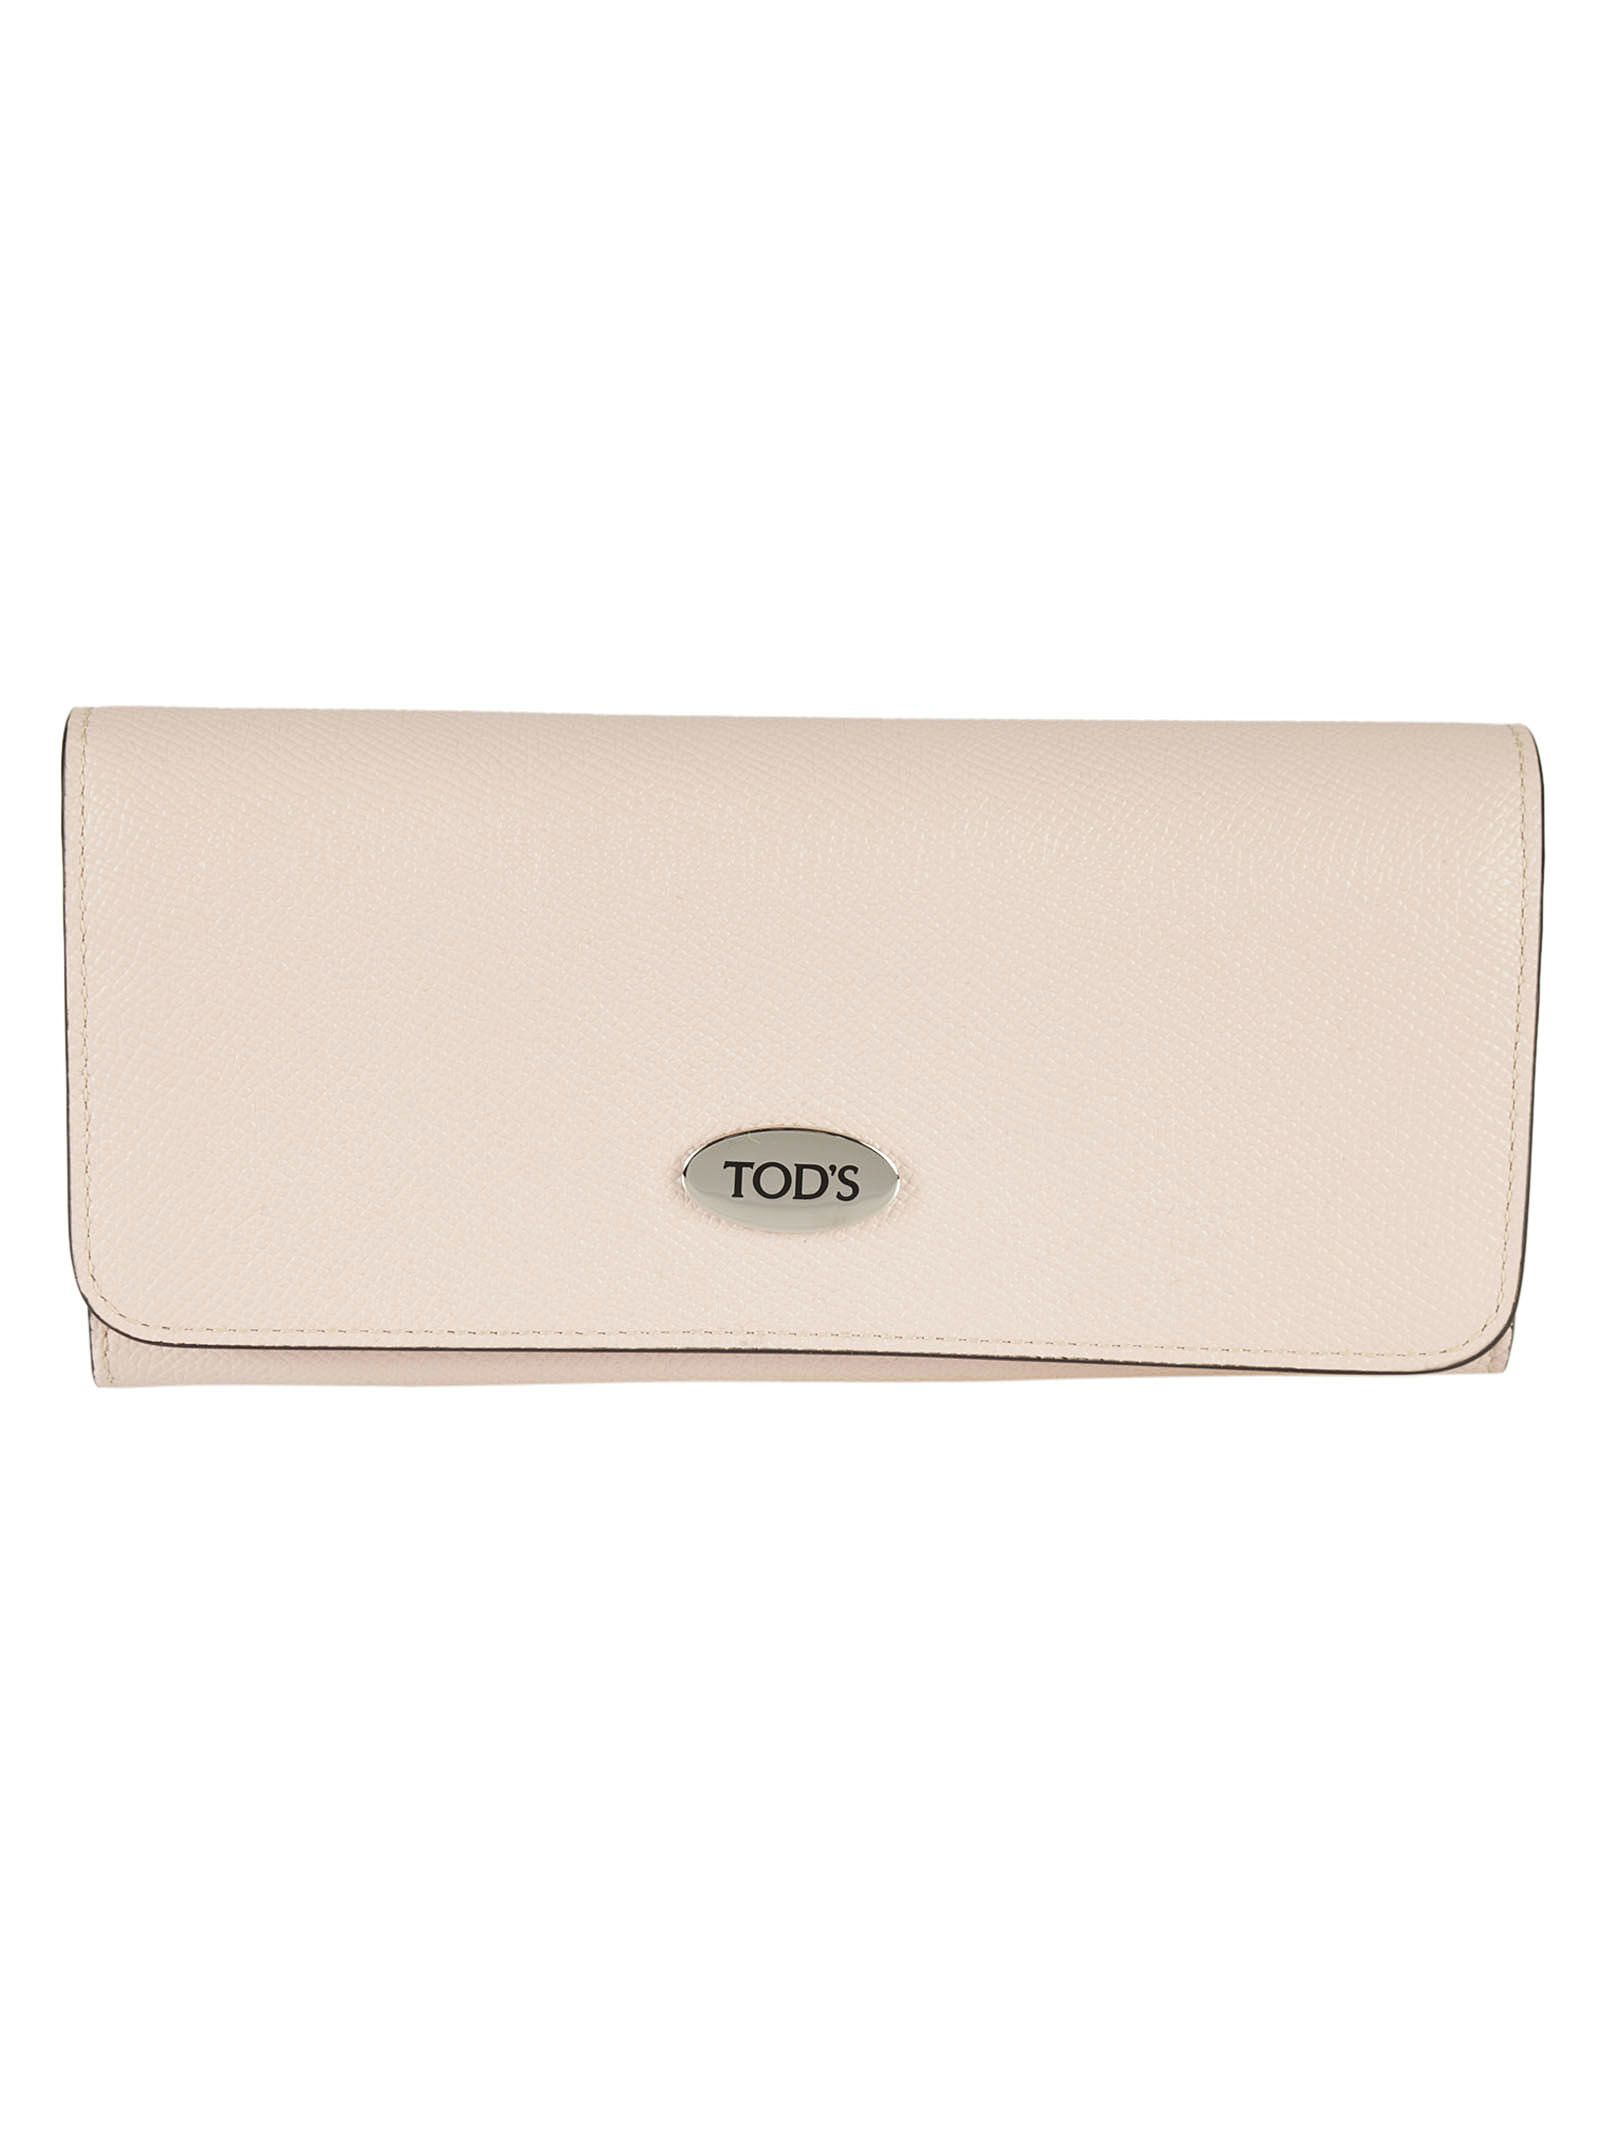 Tods Logo Continental Wallet